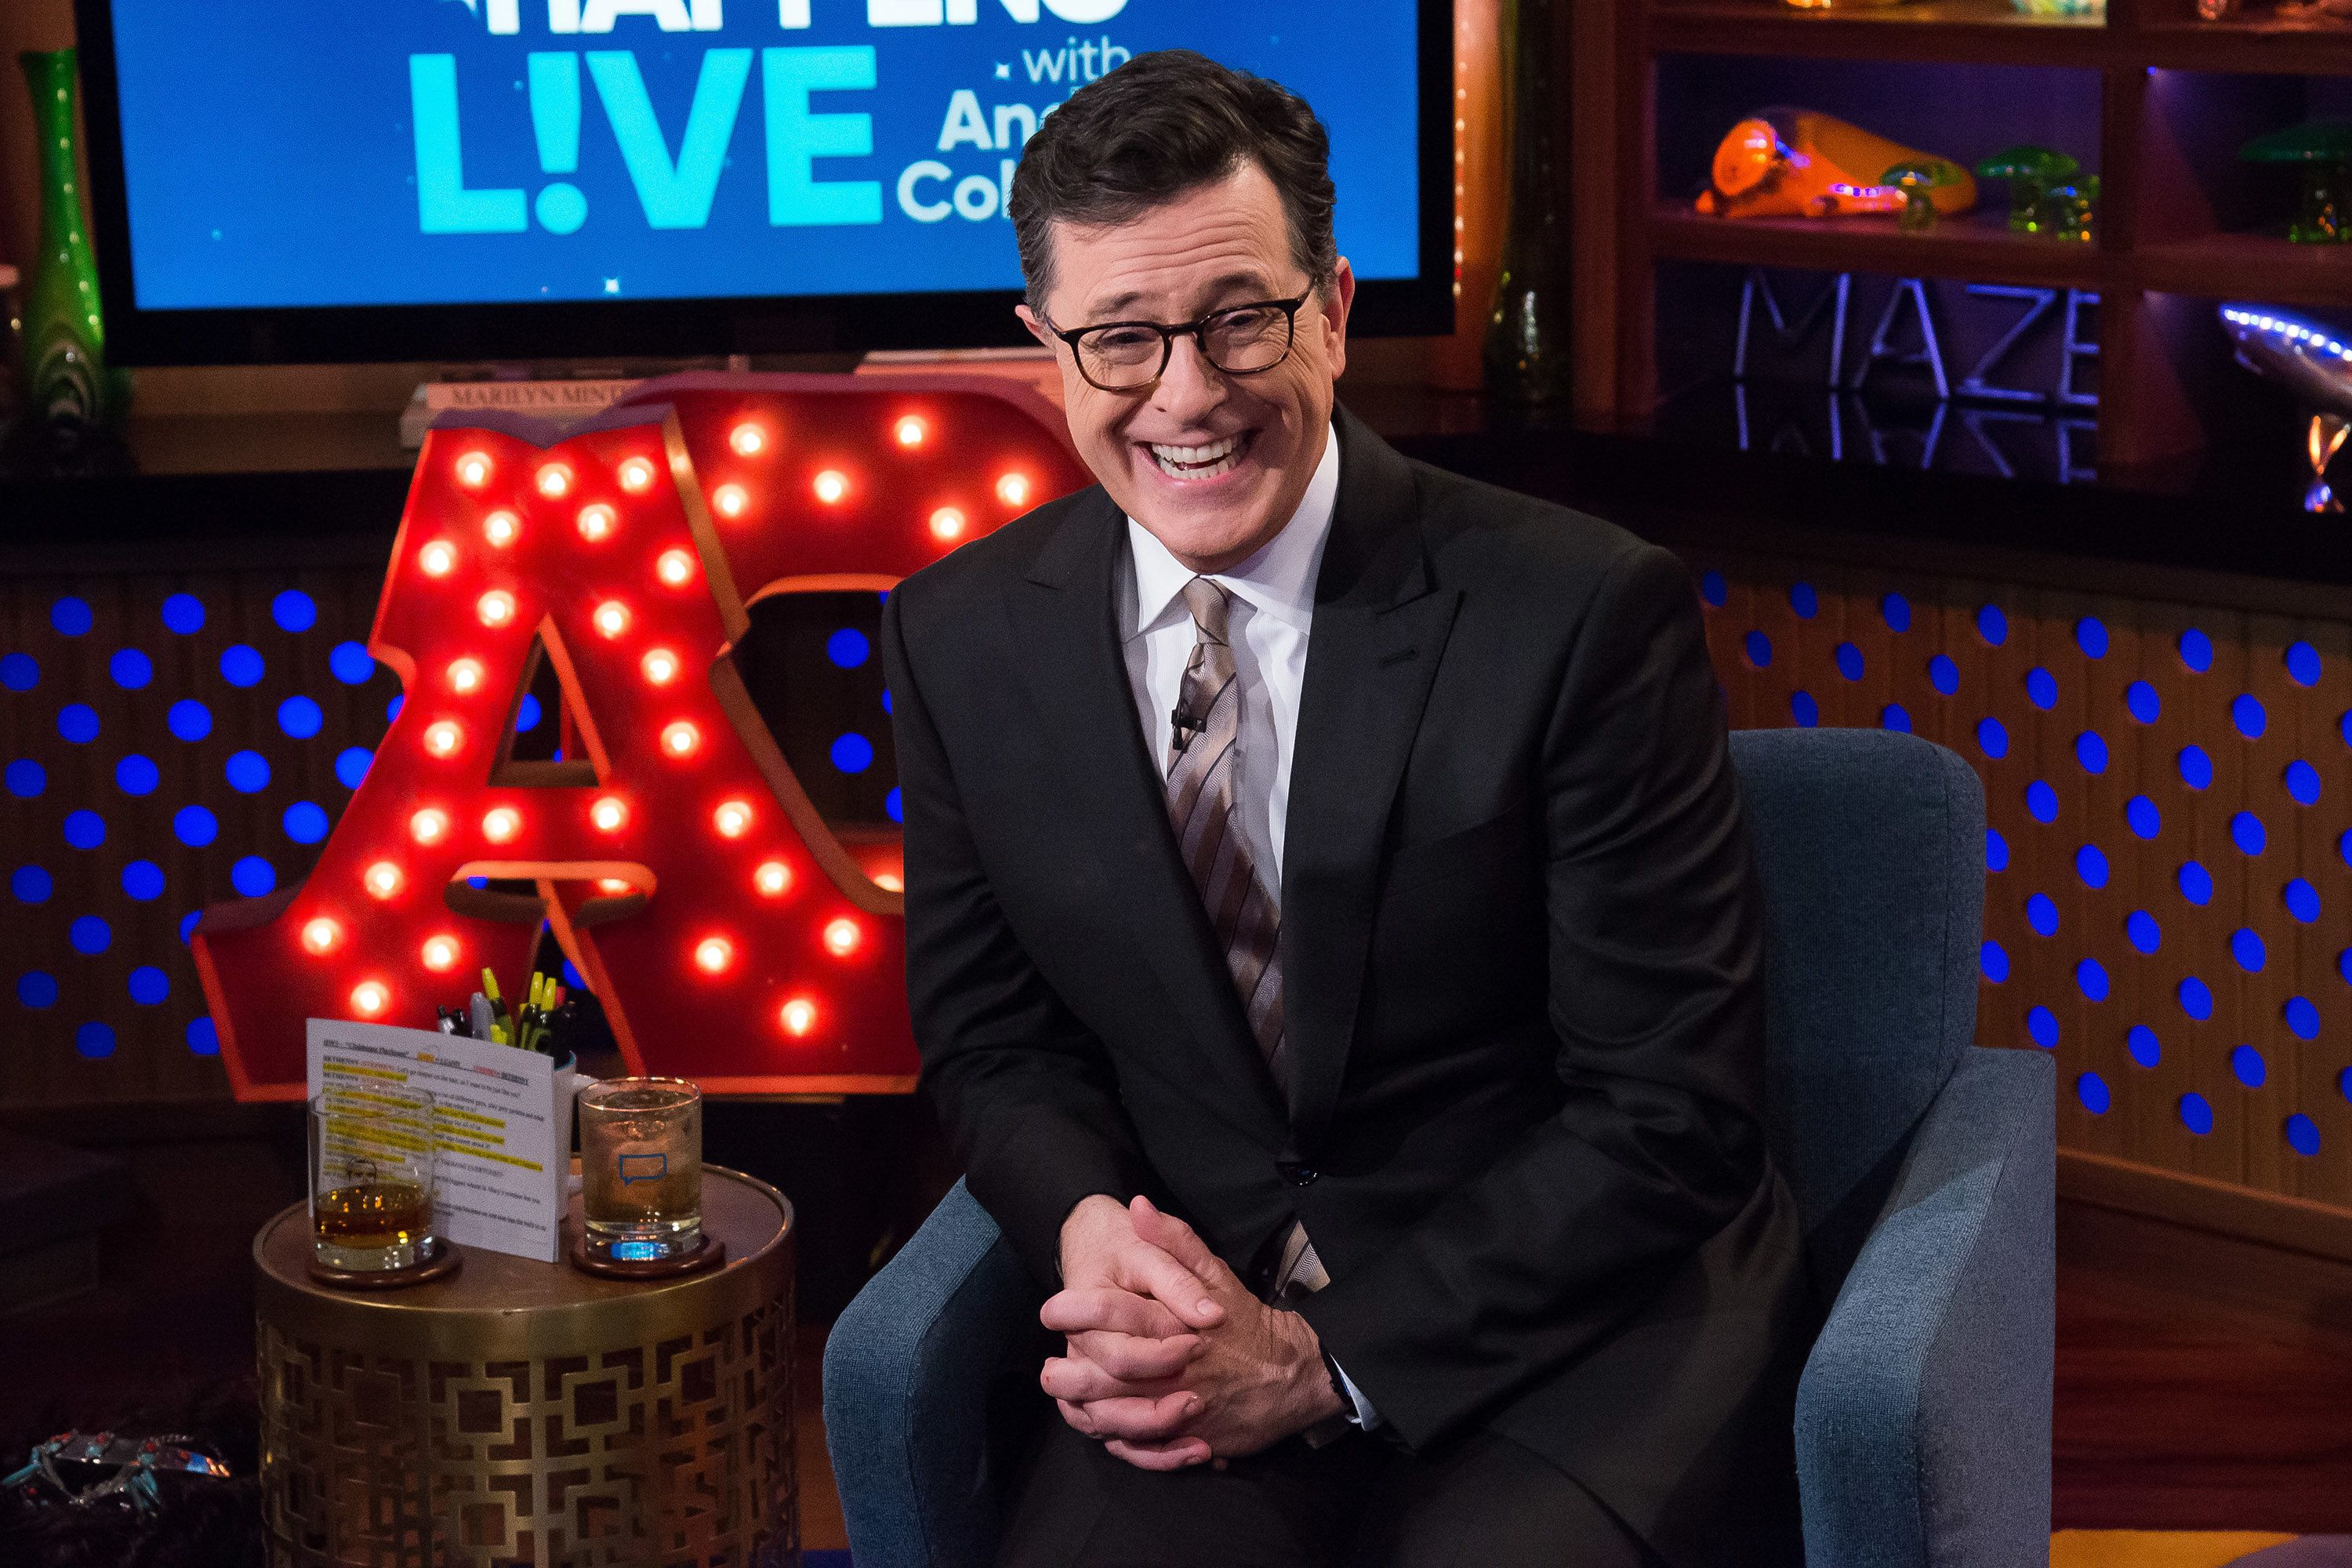 WATCH WHAT HAPPENS LIVE WITH ANDY COHEN -- Pictured: Stephen Colbert -- (Photo by: Charles Sykes/Bravo/NBCU Photo Bank via Getty Images)